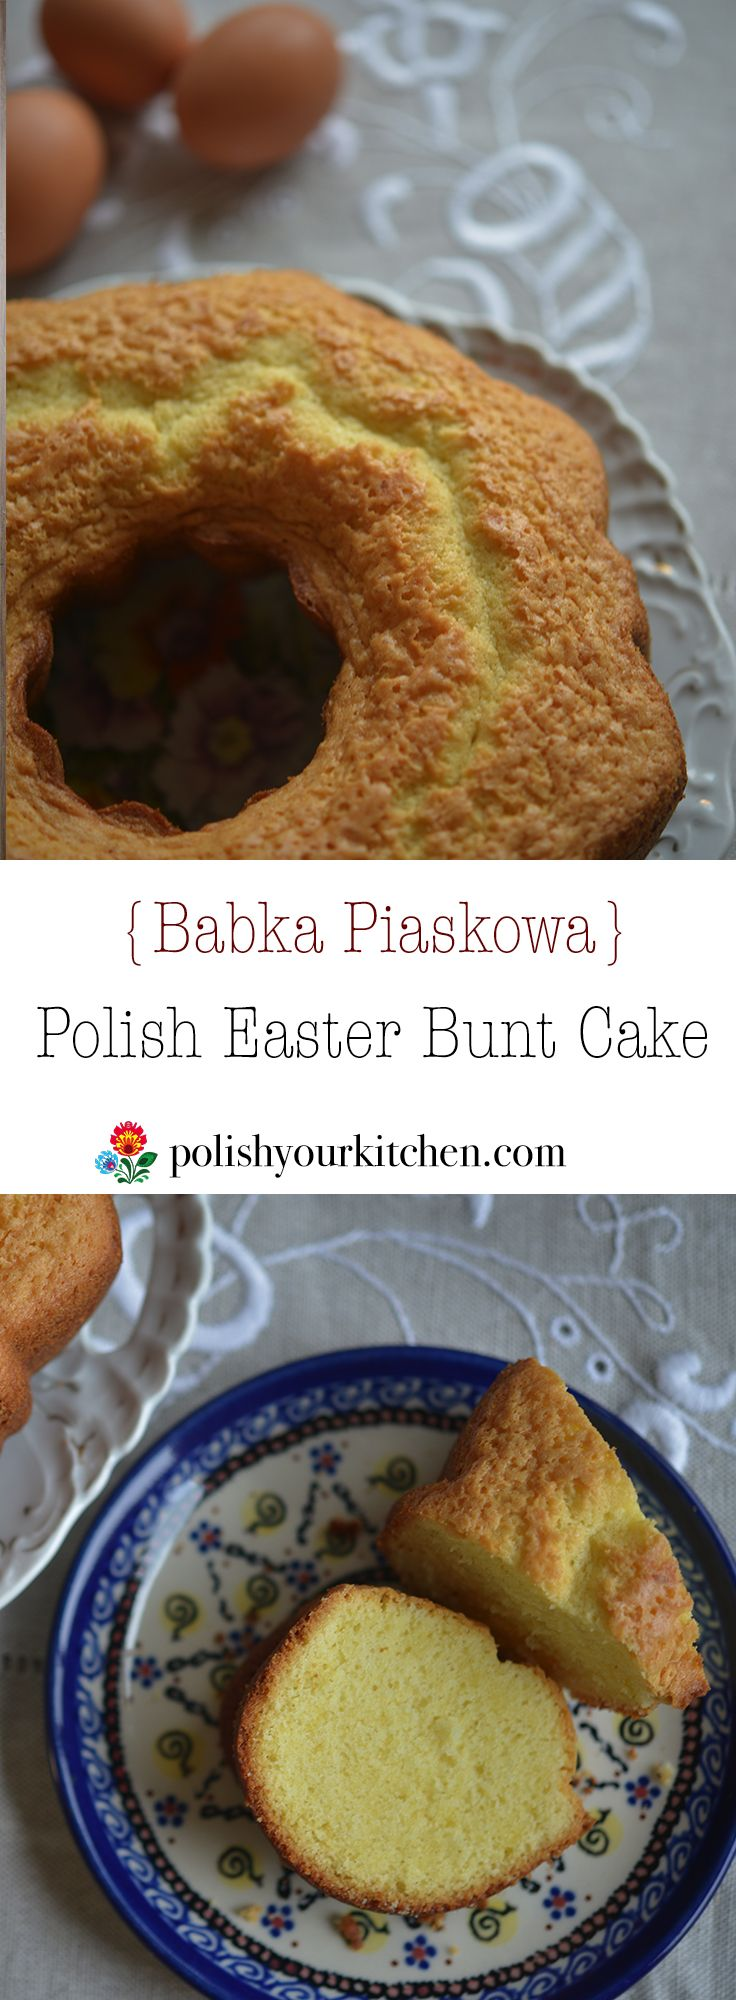 Simple recipe for favorite Polish dessert: Babka. Sweet, light and soft cake, slightly lemony often prepared for Polish Easter or Christmas. Recipe by Anna @polishyourkitchen.